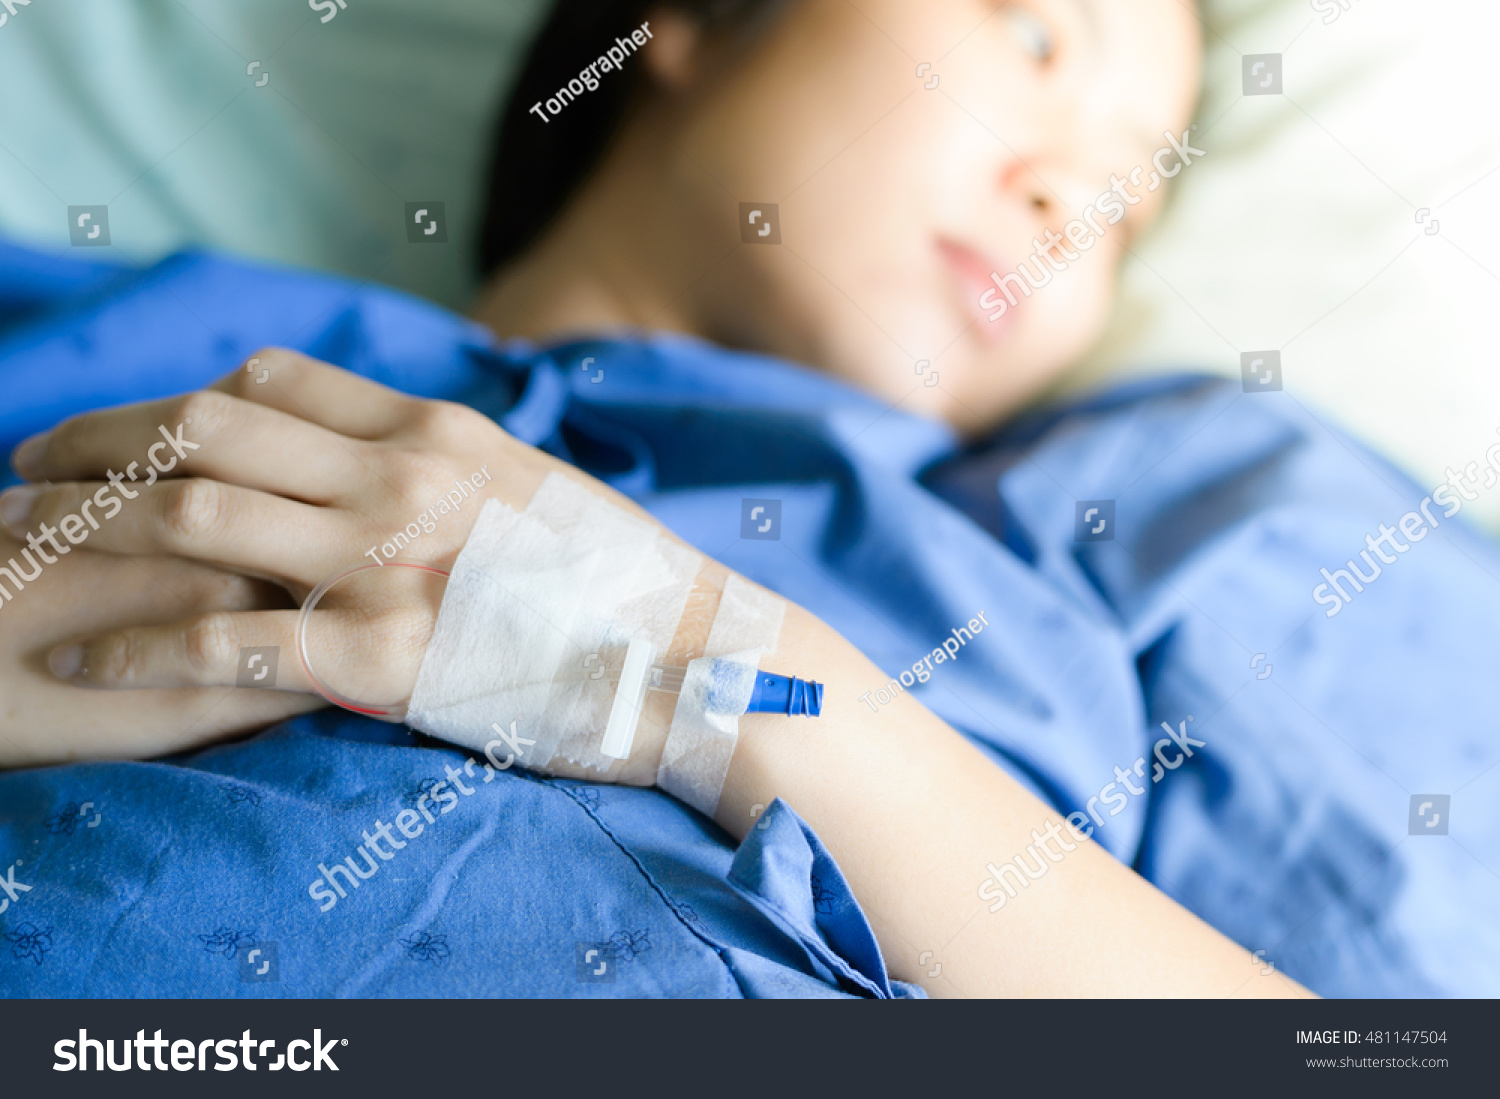 Water bed for patients - Closeup Saline Water Line At The Hand Of Patient On Bed In Hospital Room Infusion